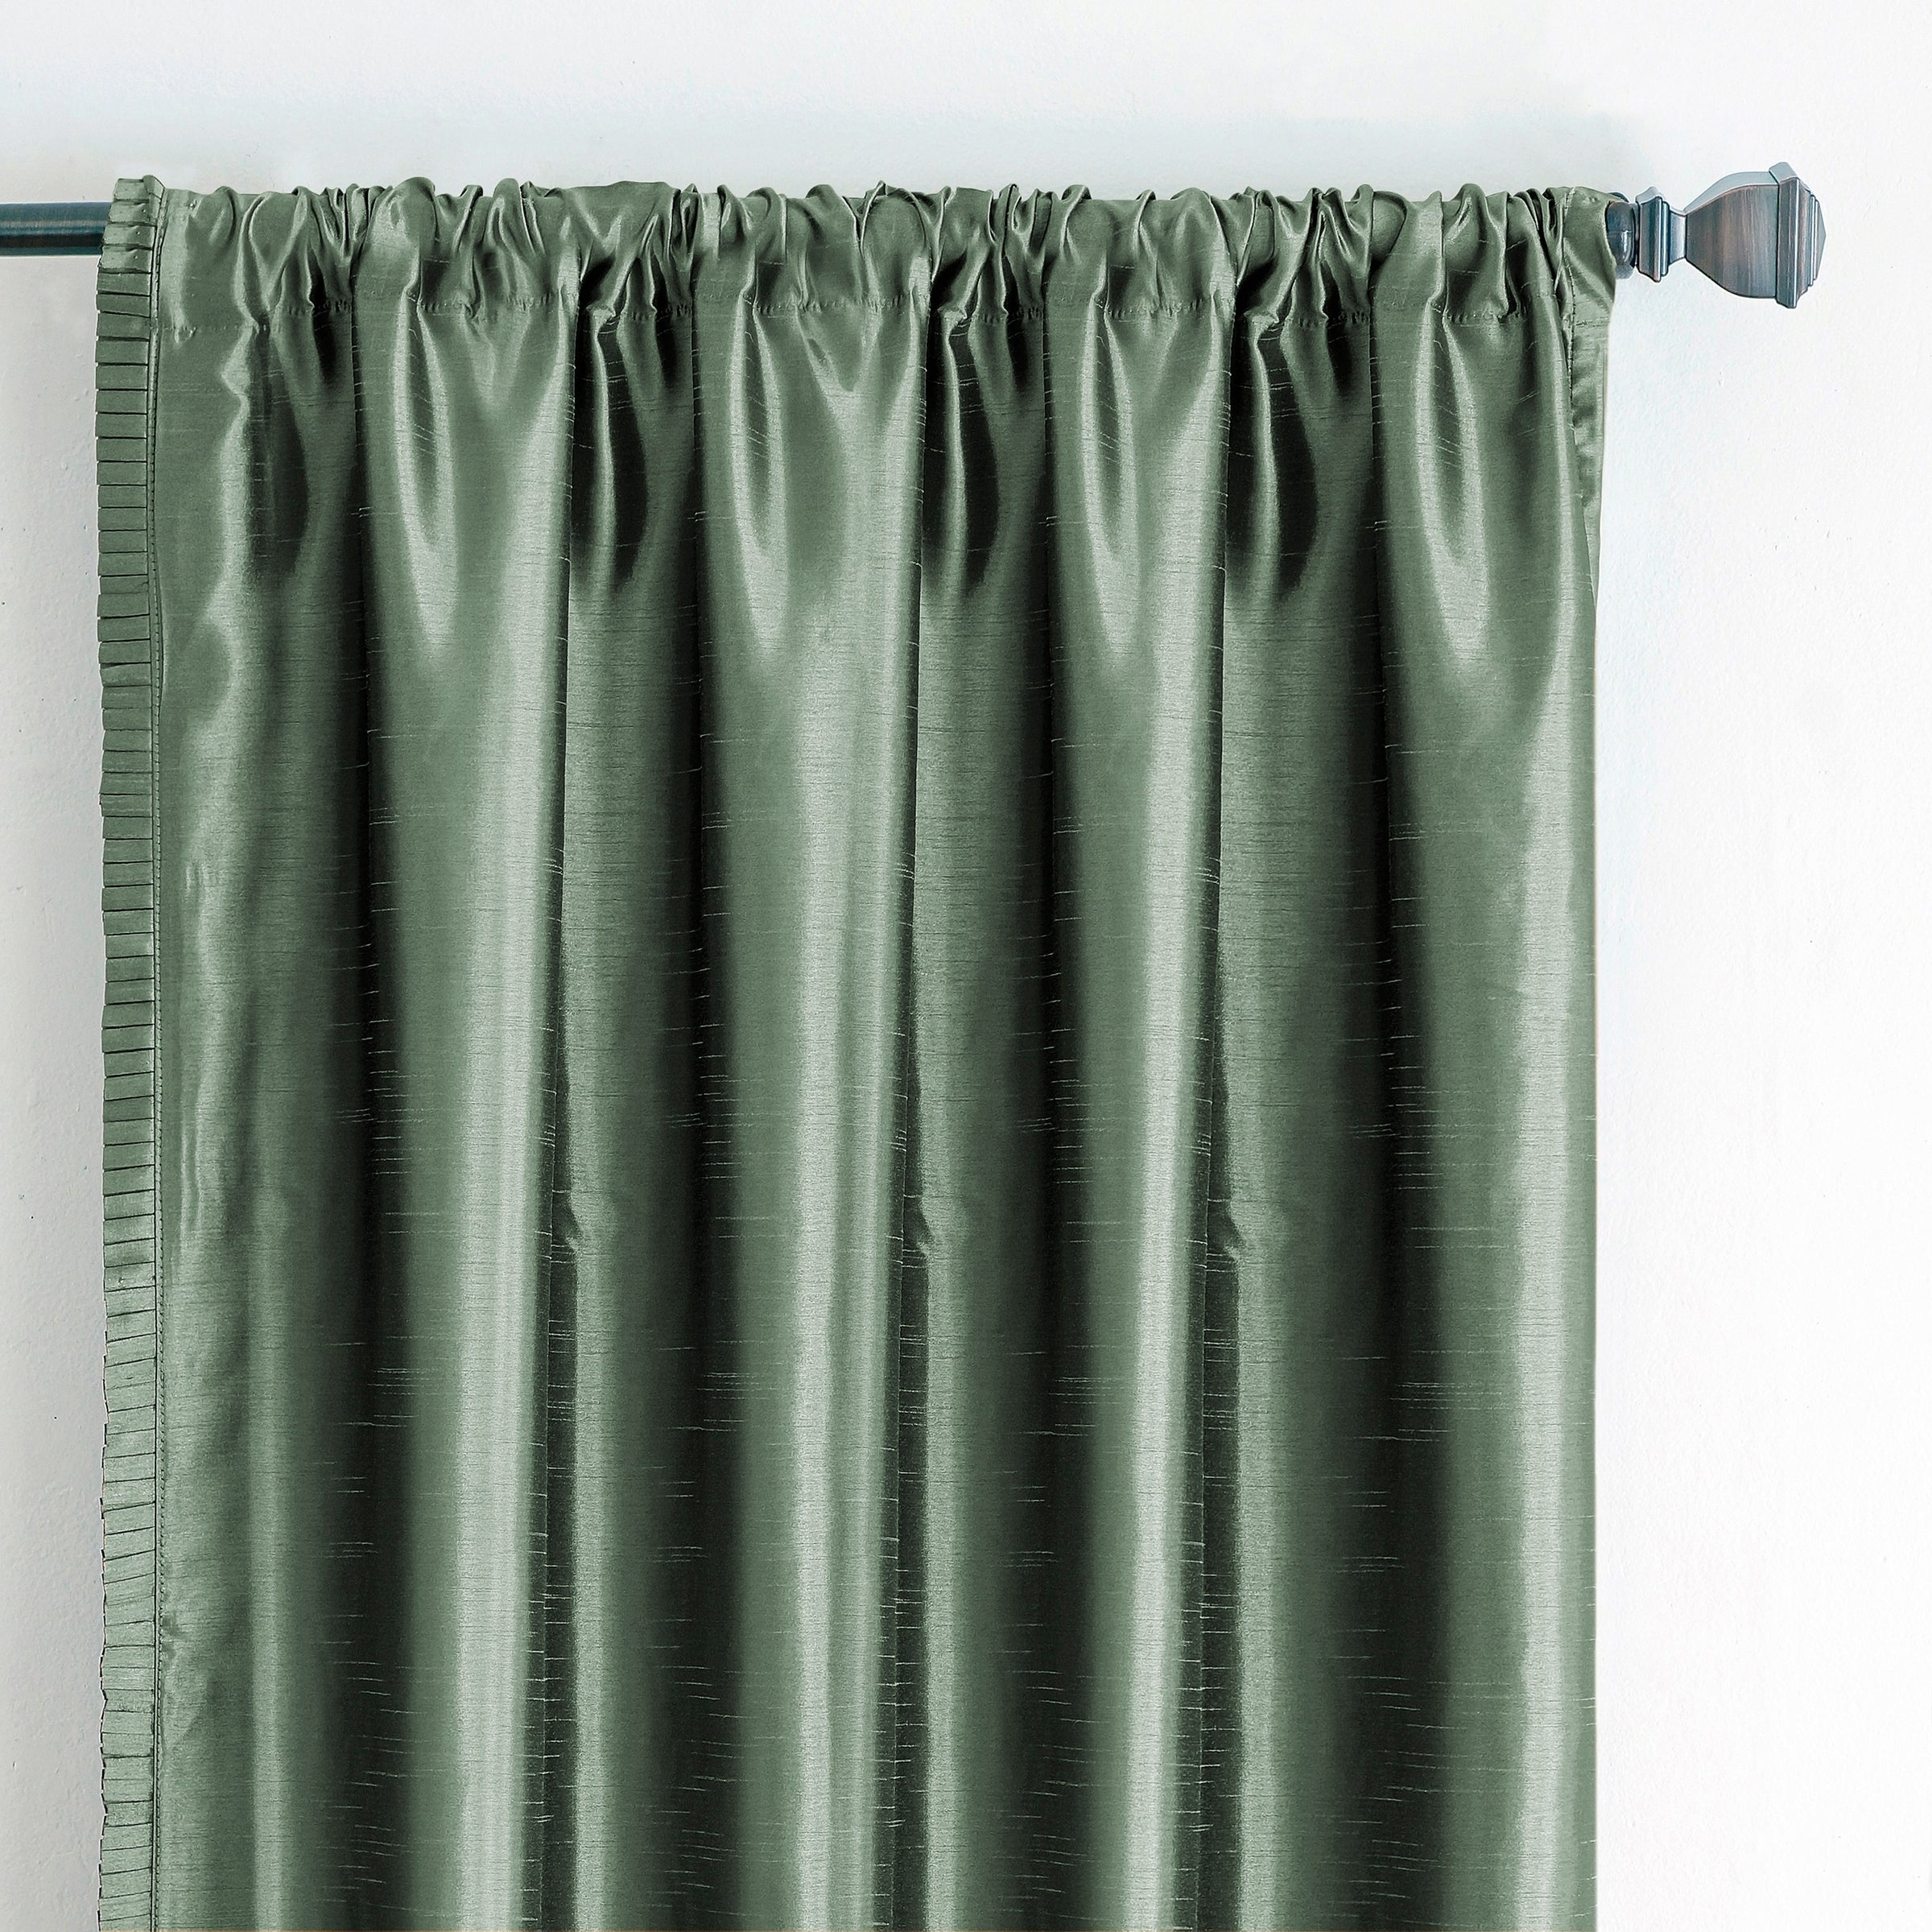 Elrene Versailles Pleated Blackout Curtain Panel In Elrene Versailles Pleated Blackout Curtain Panels (View 5 of 20)